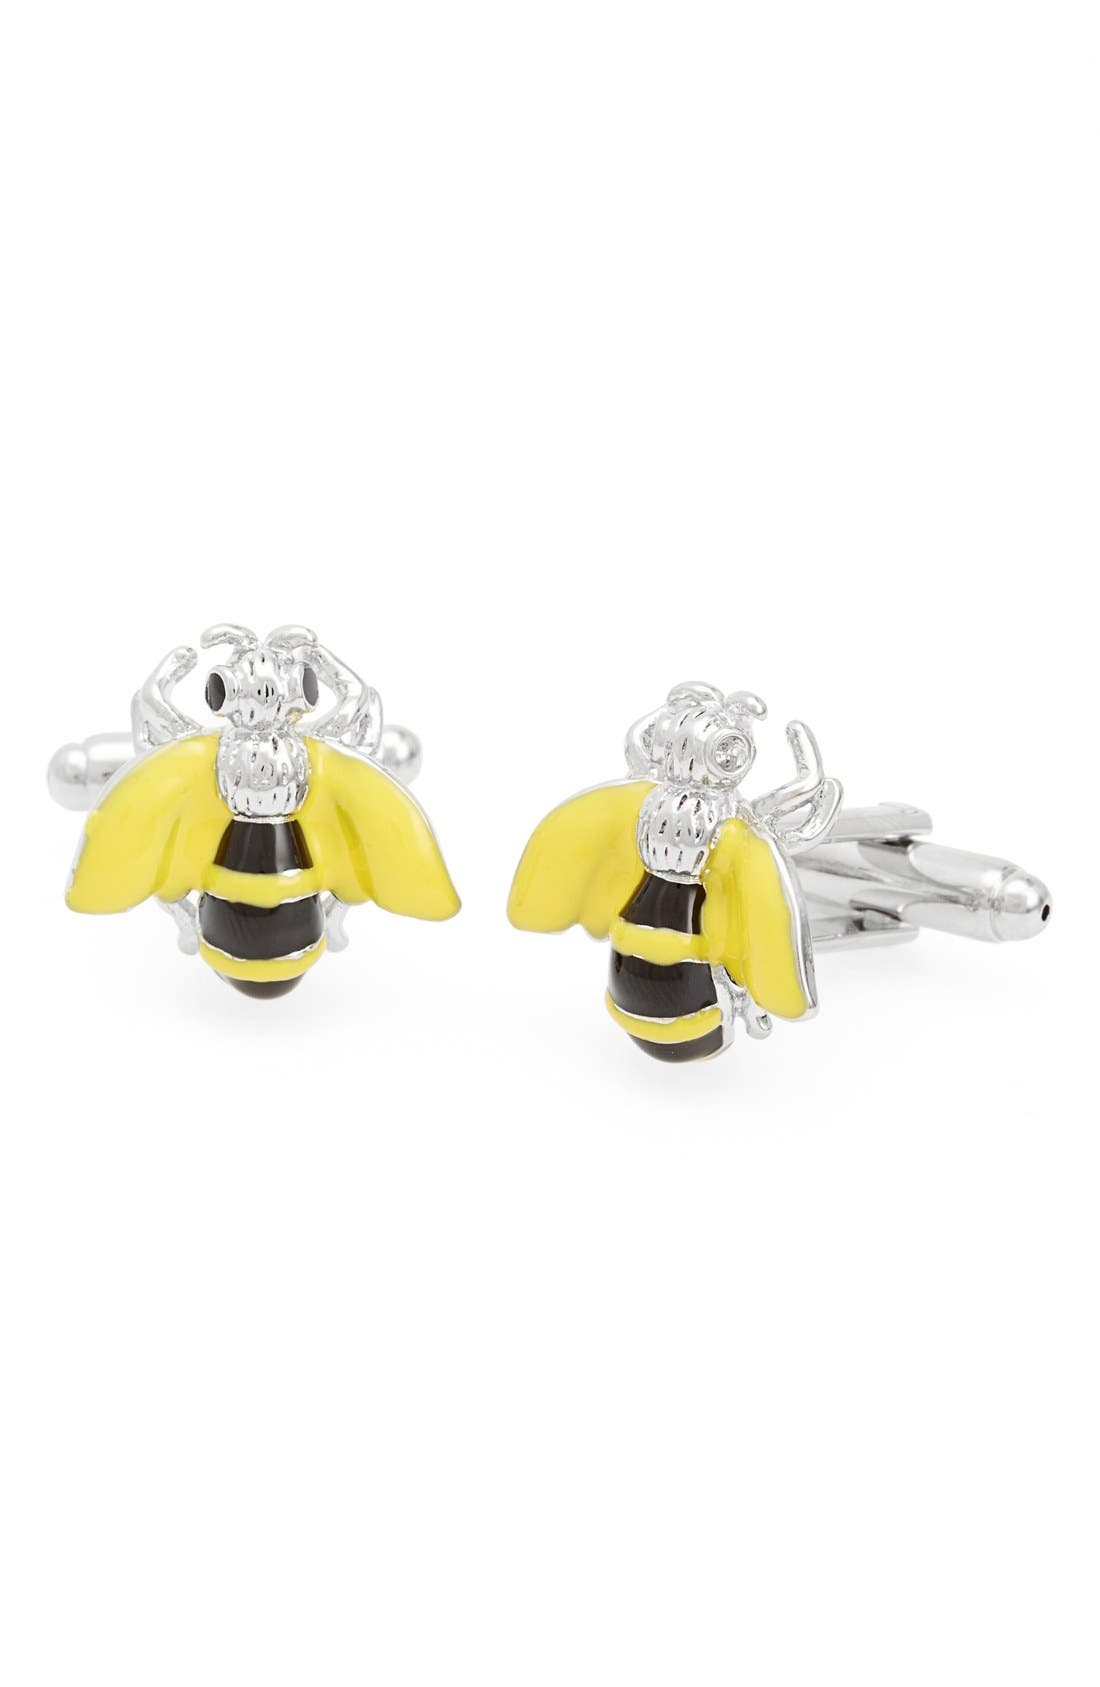 'Bee' Cuff Links,                             Main thumbnail 1, color,                             040